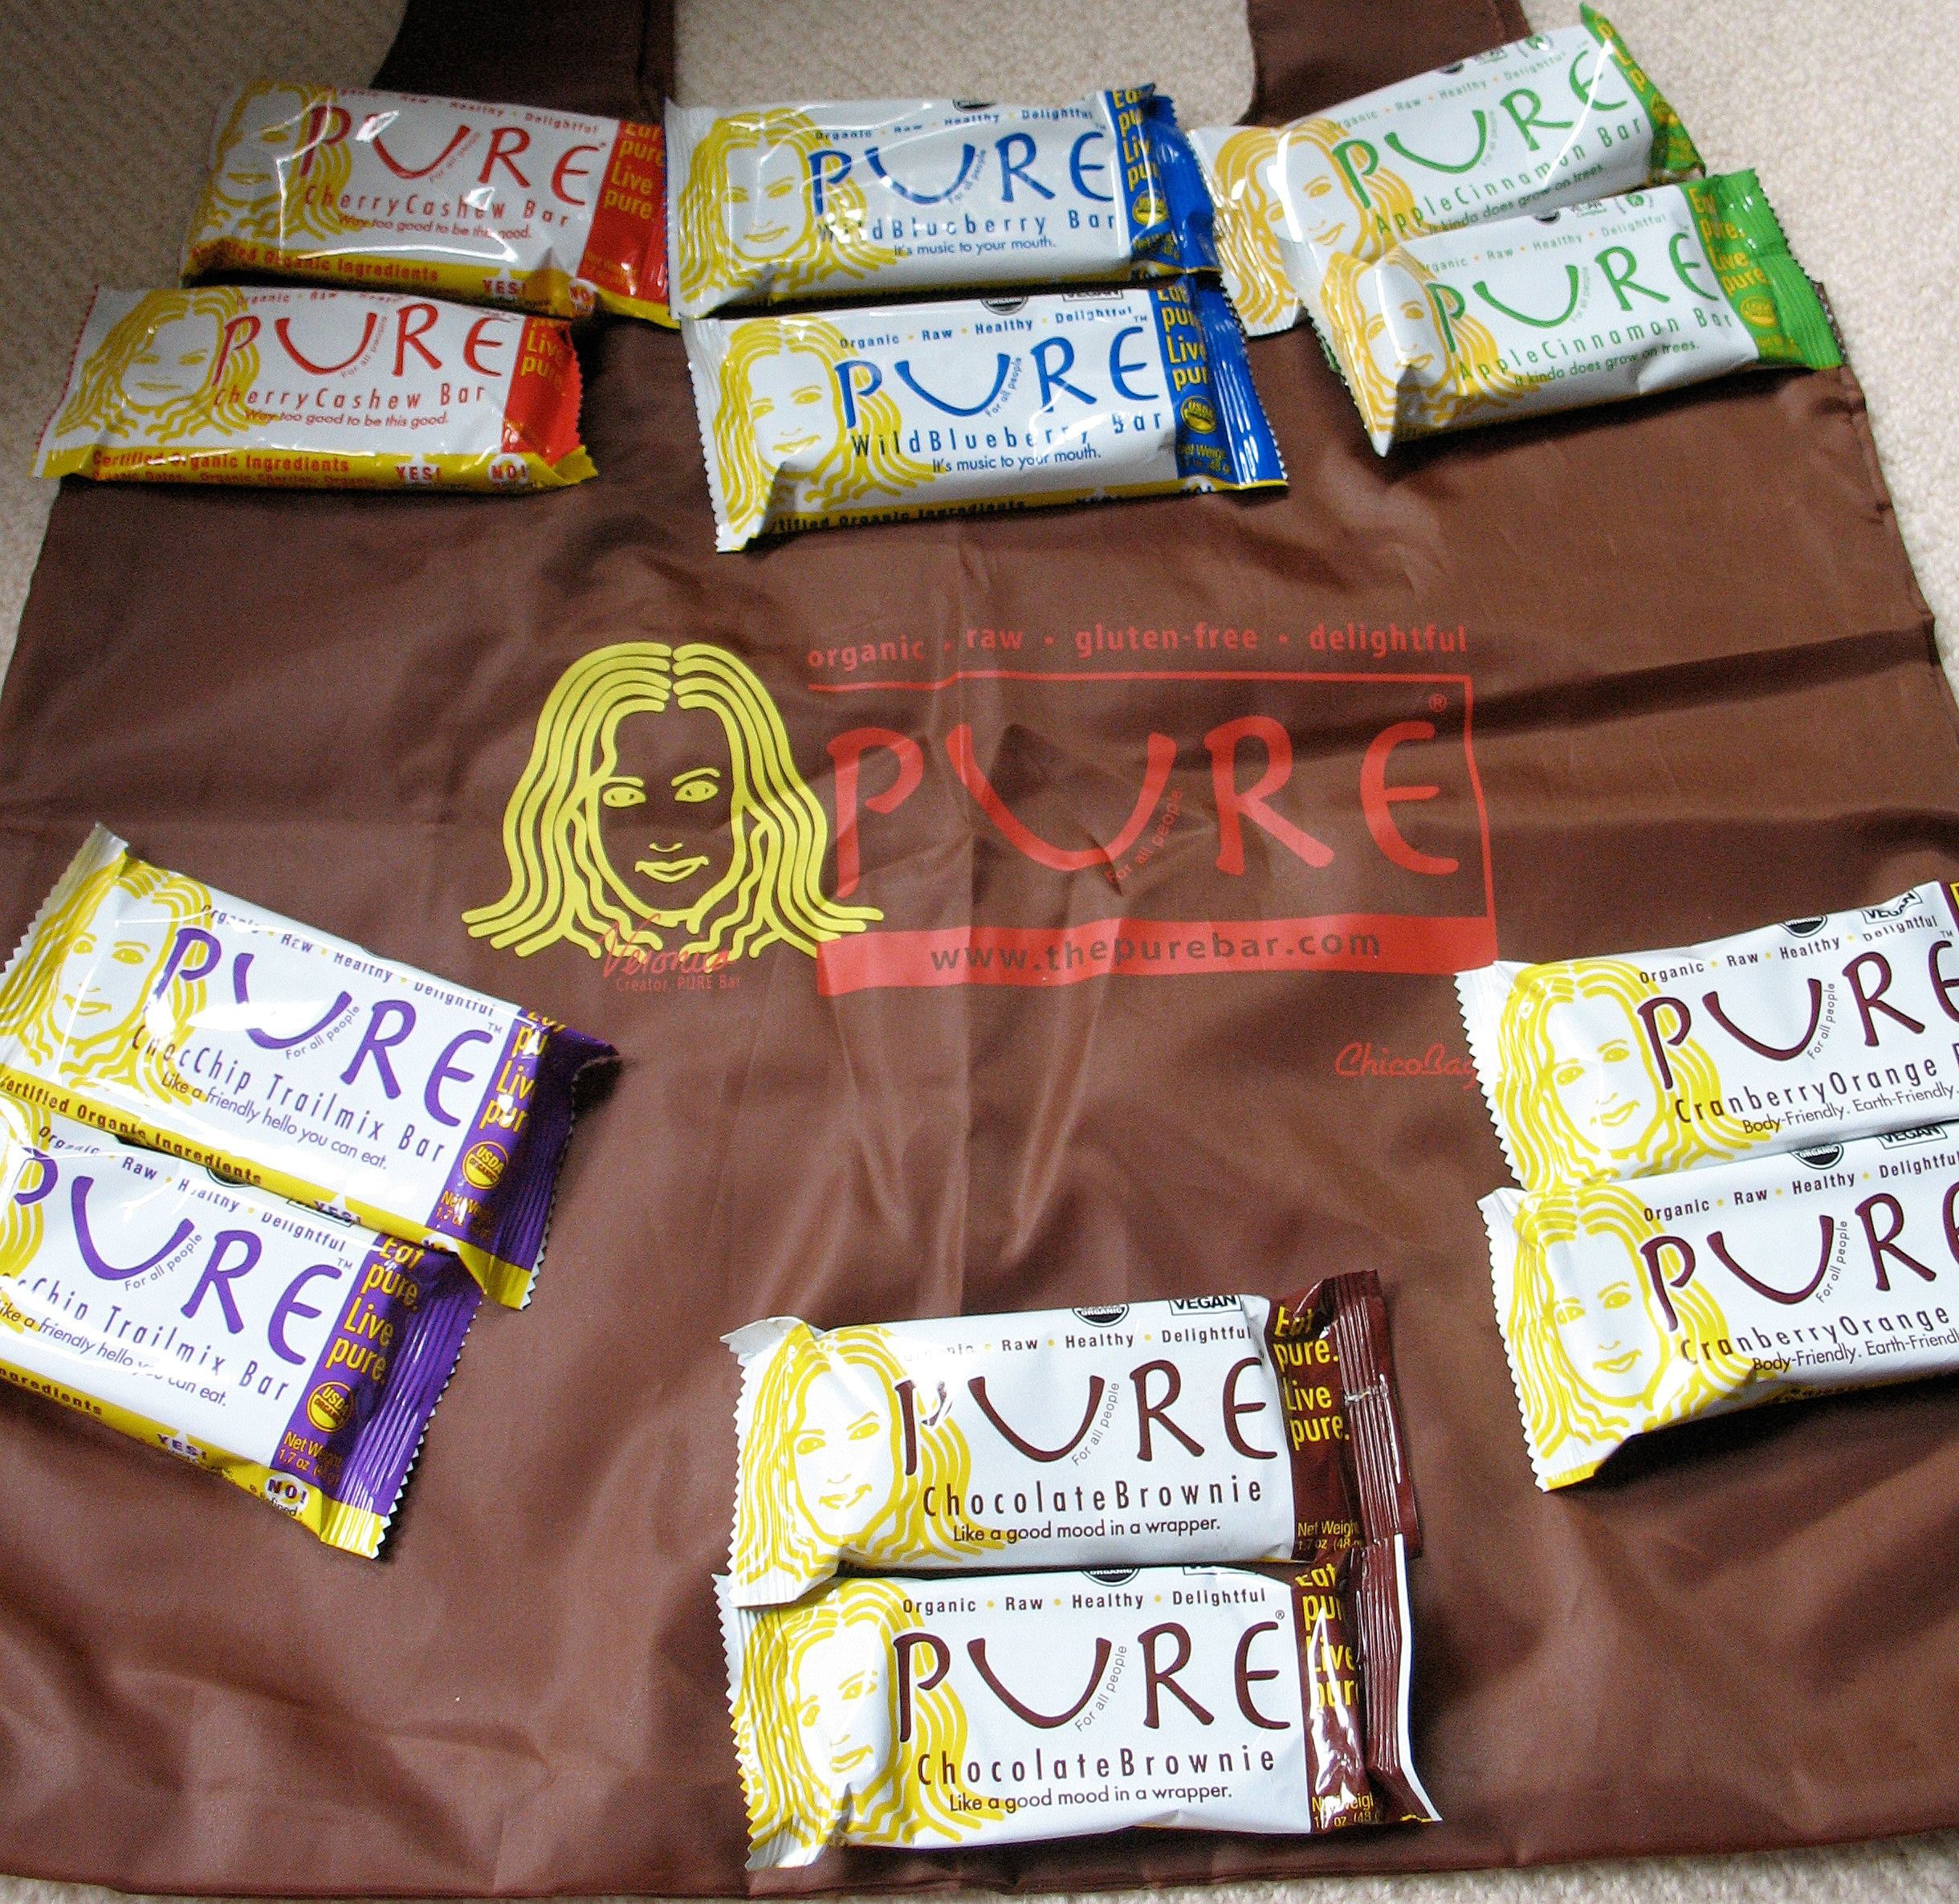 What is your favorite PURE bar flavor?